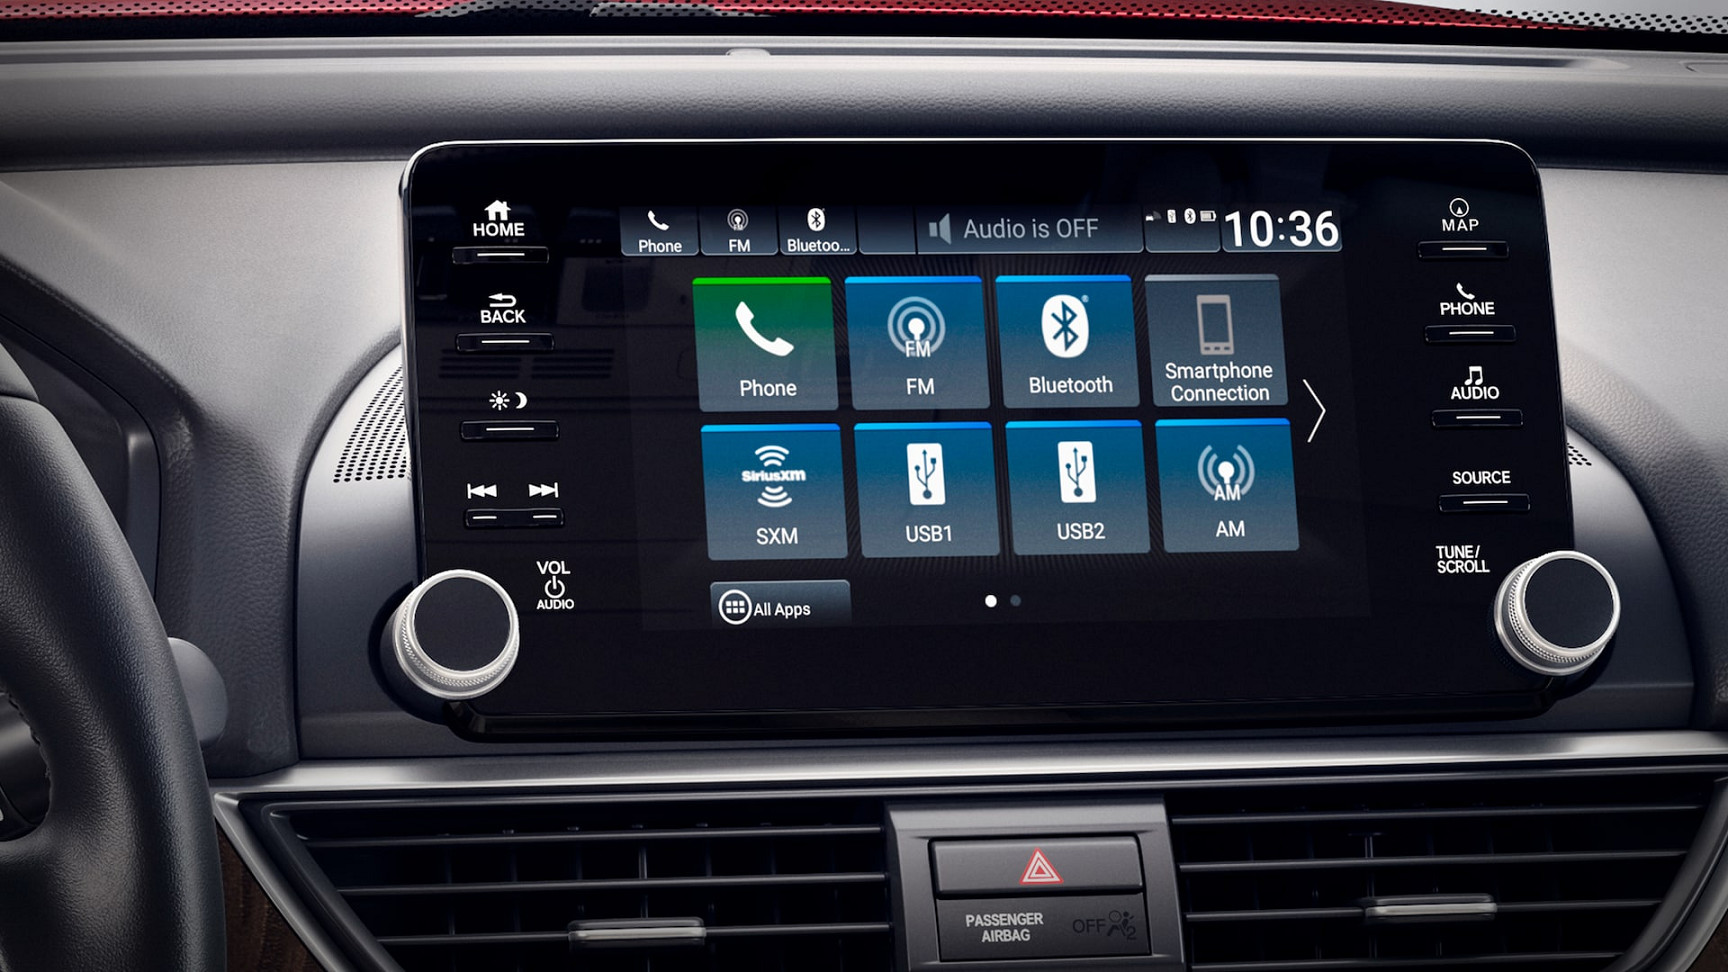 Touchscreen Display in the 2020 Honda Accord